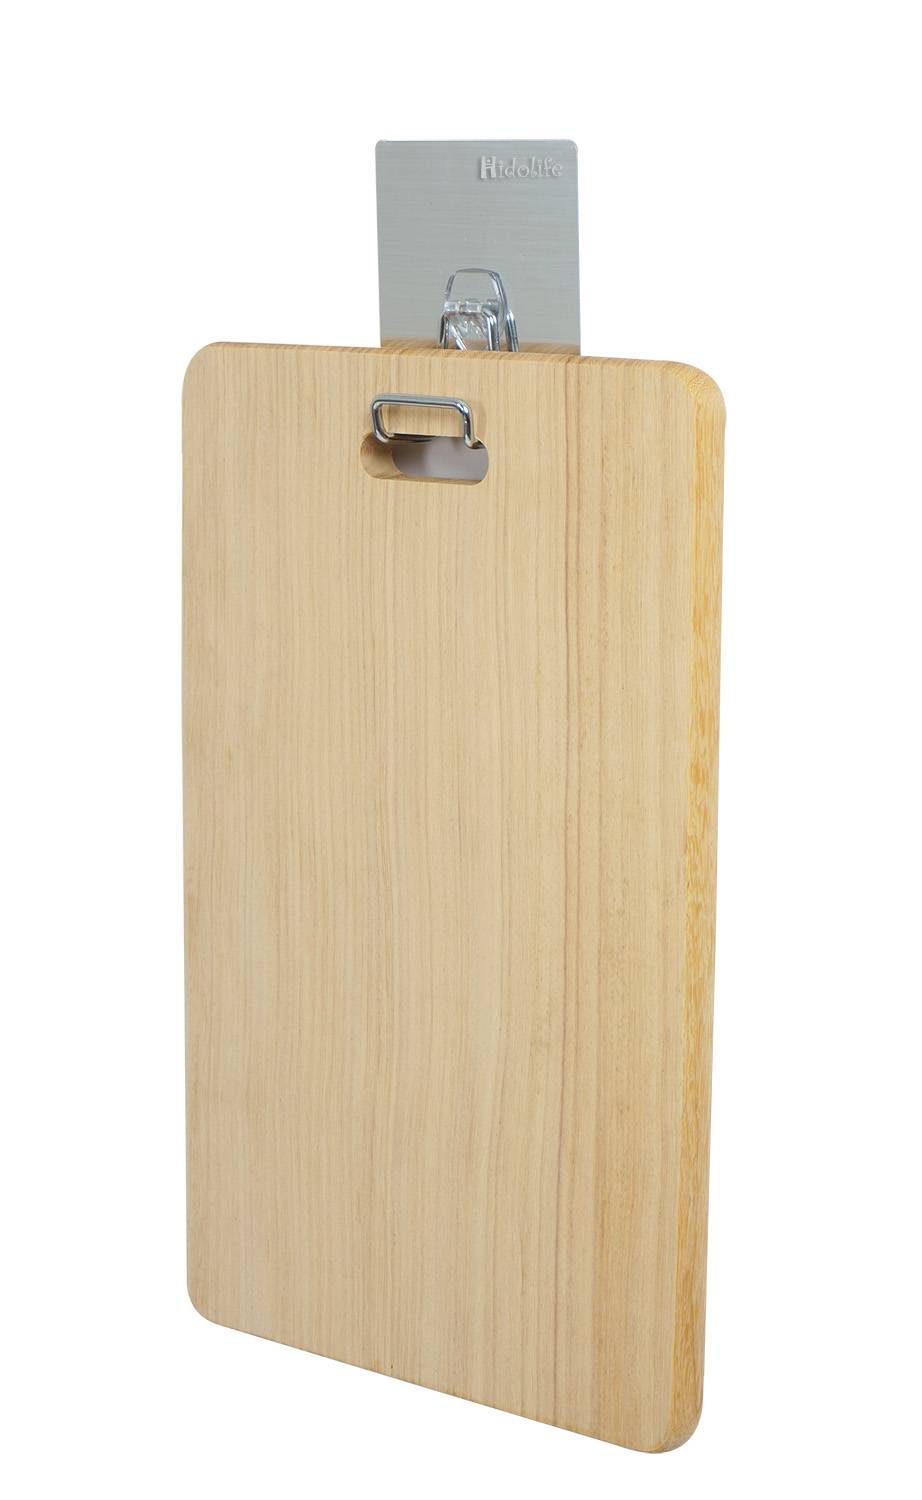 Adhesive Stainless Cutting Board Hook